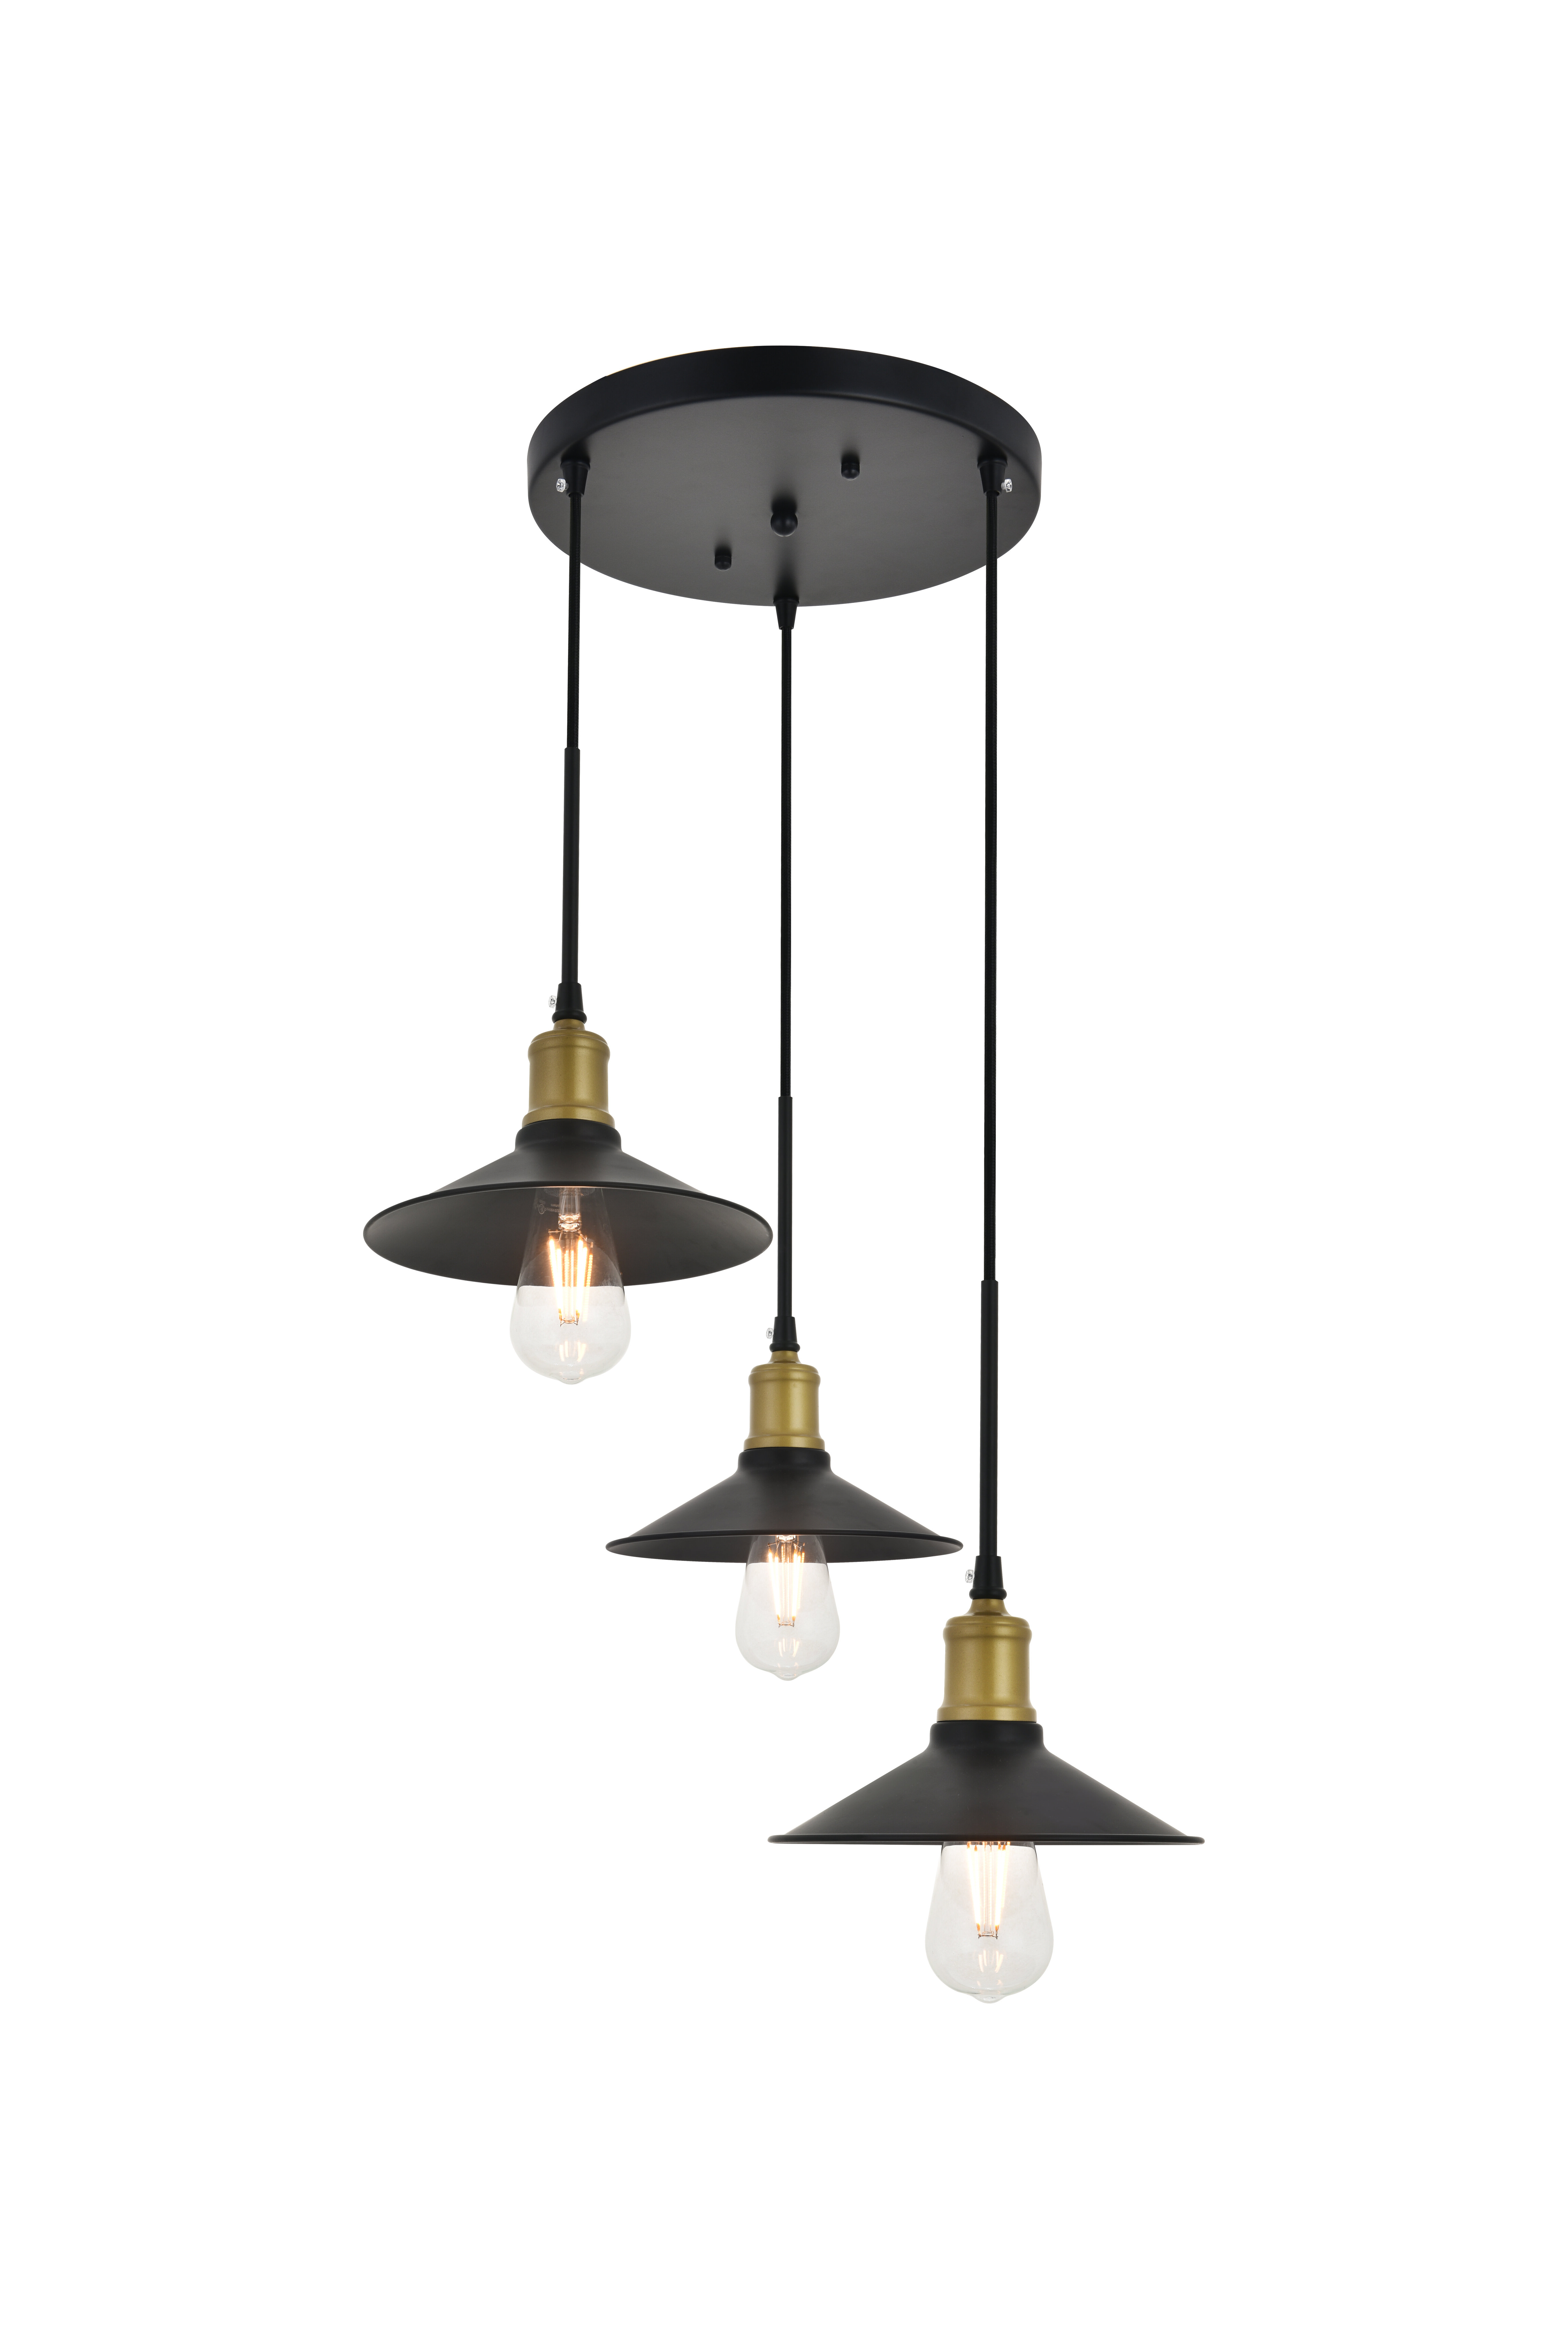 Berenice 3 Light Cluster Teardrop Pendants Throughout Well Known Dellwood 3 Light Cluster Pendant (View 8 of 20)